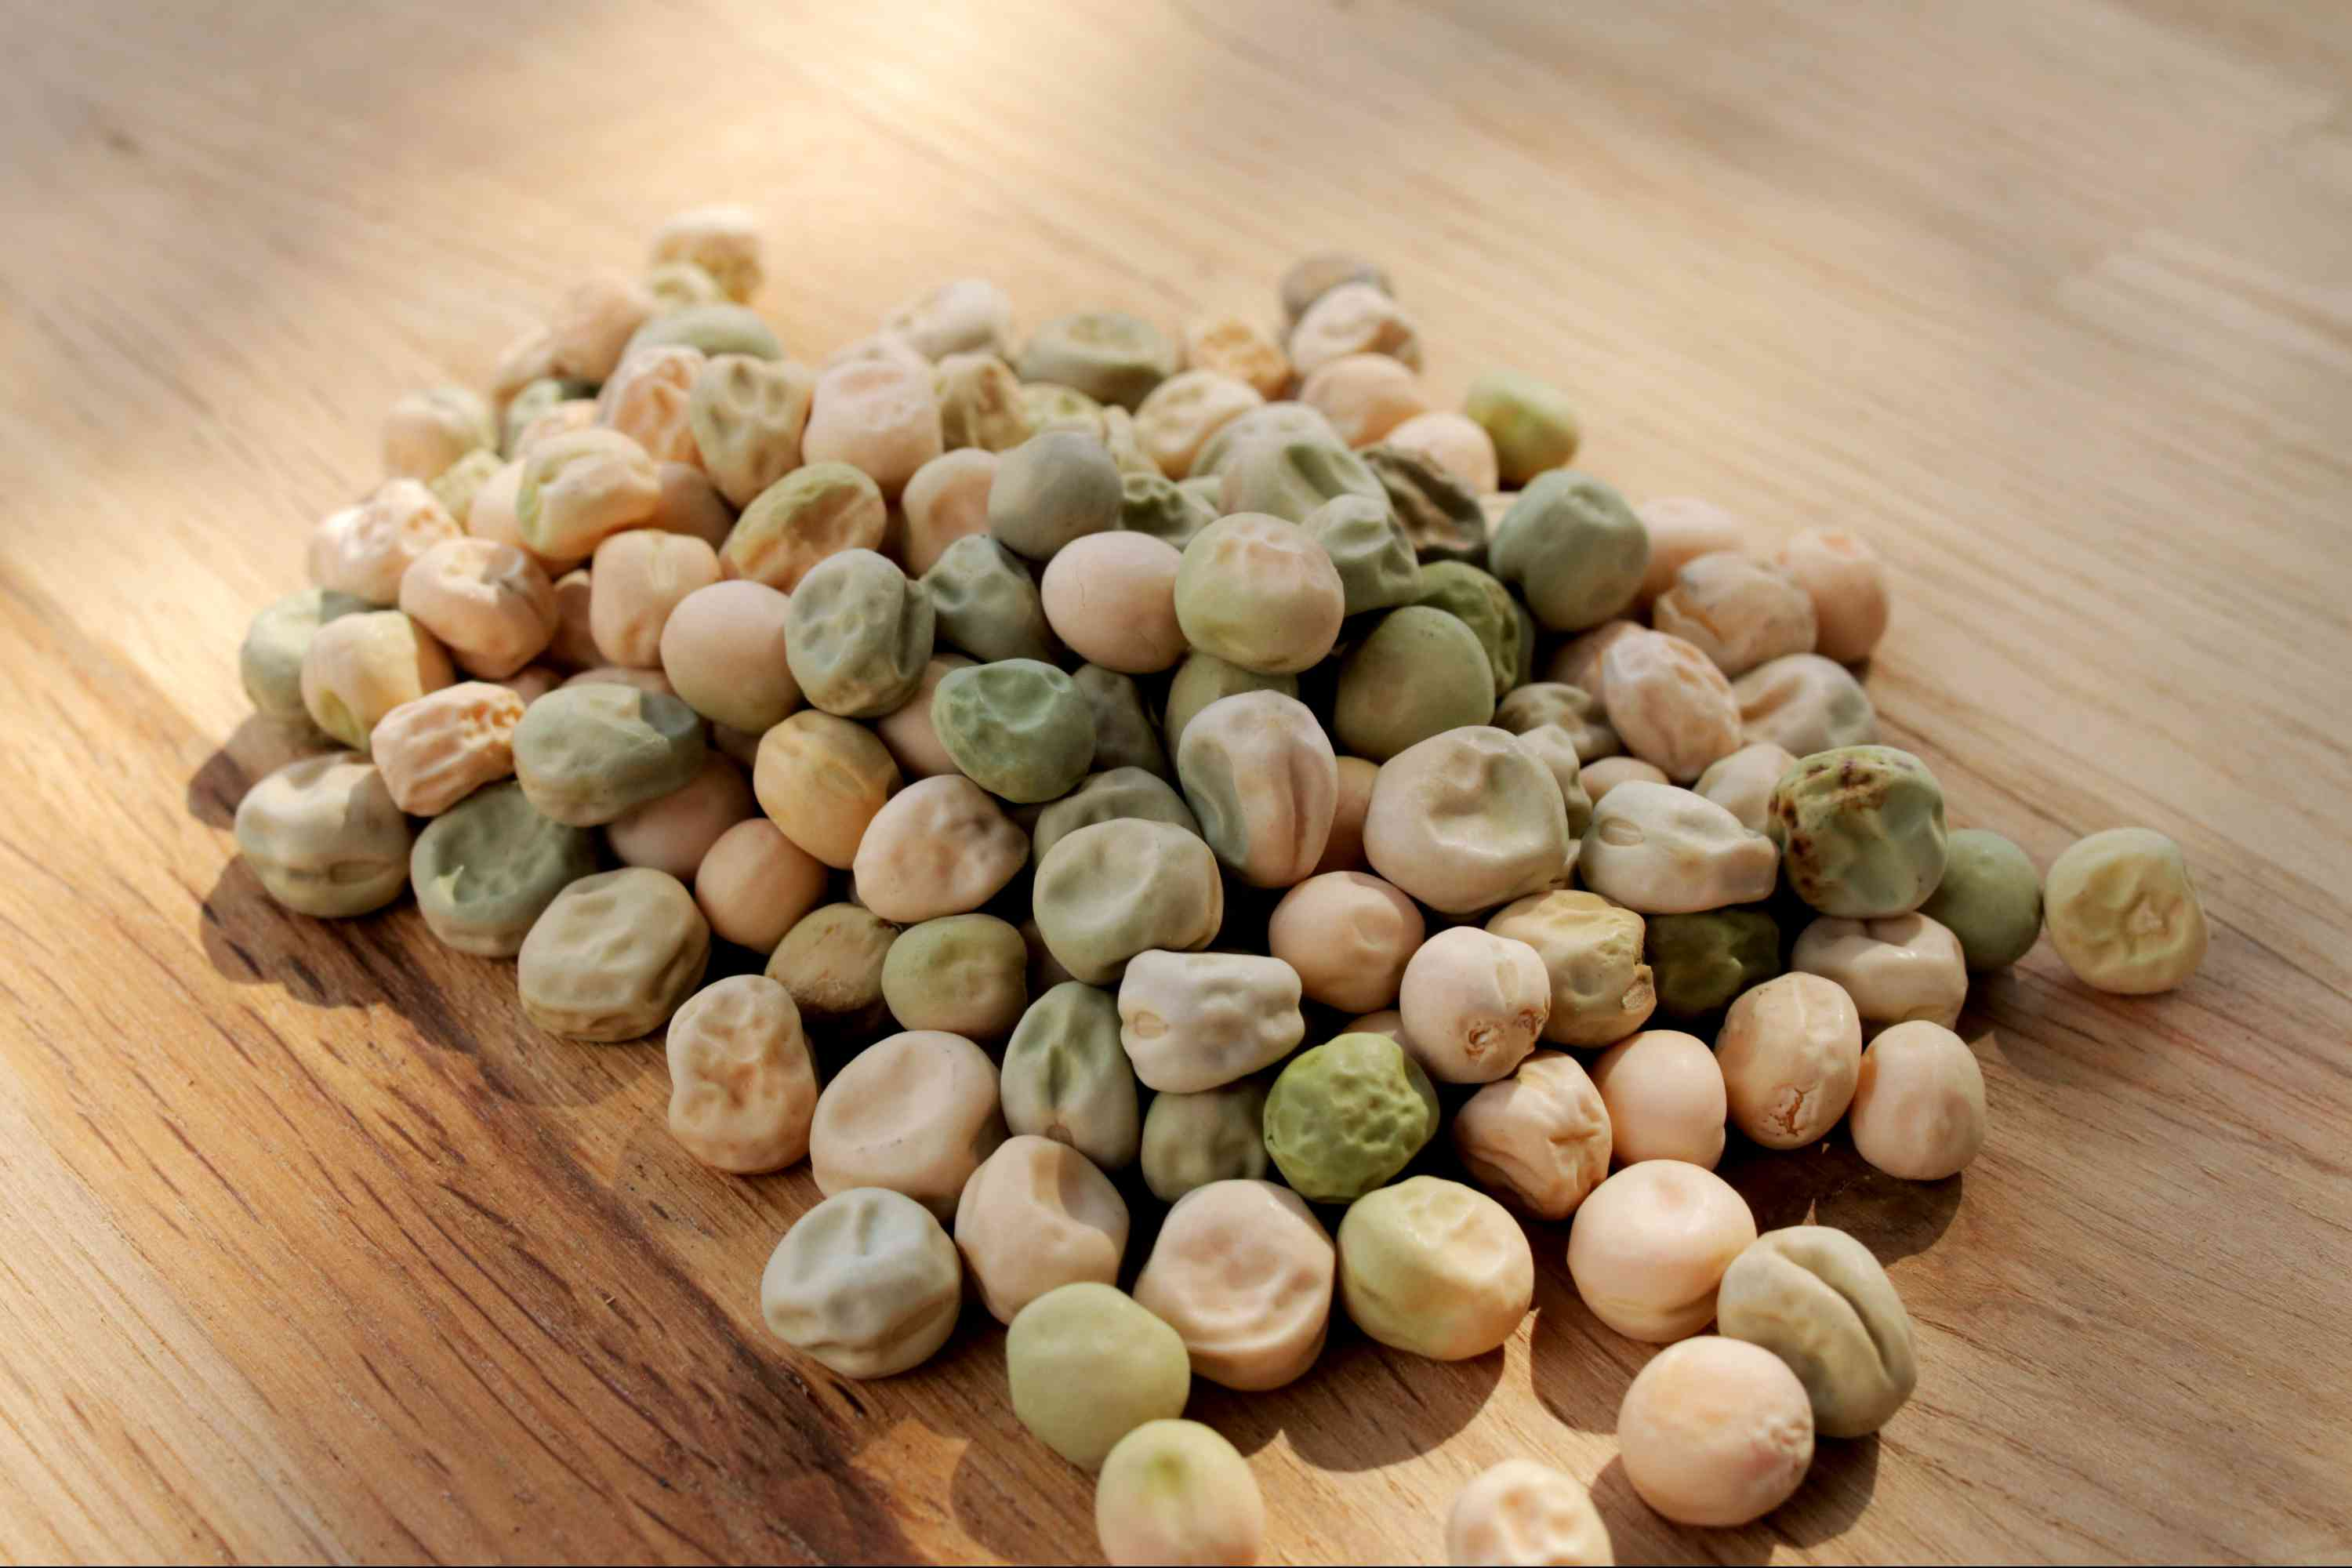 Pea seeds on wooden surface